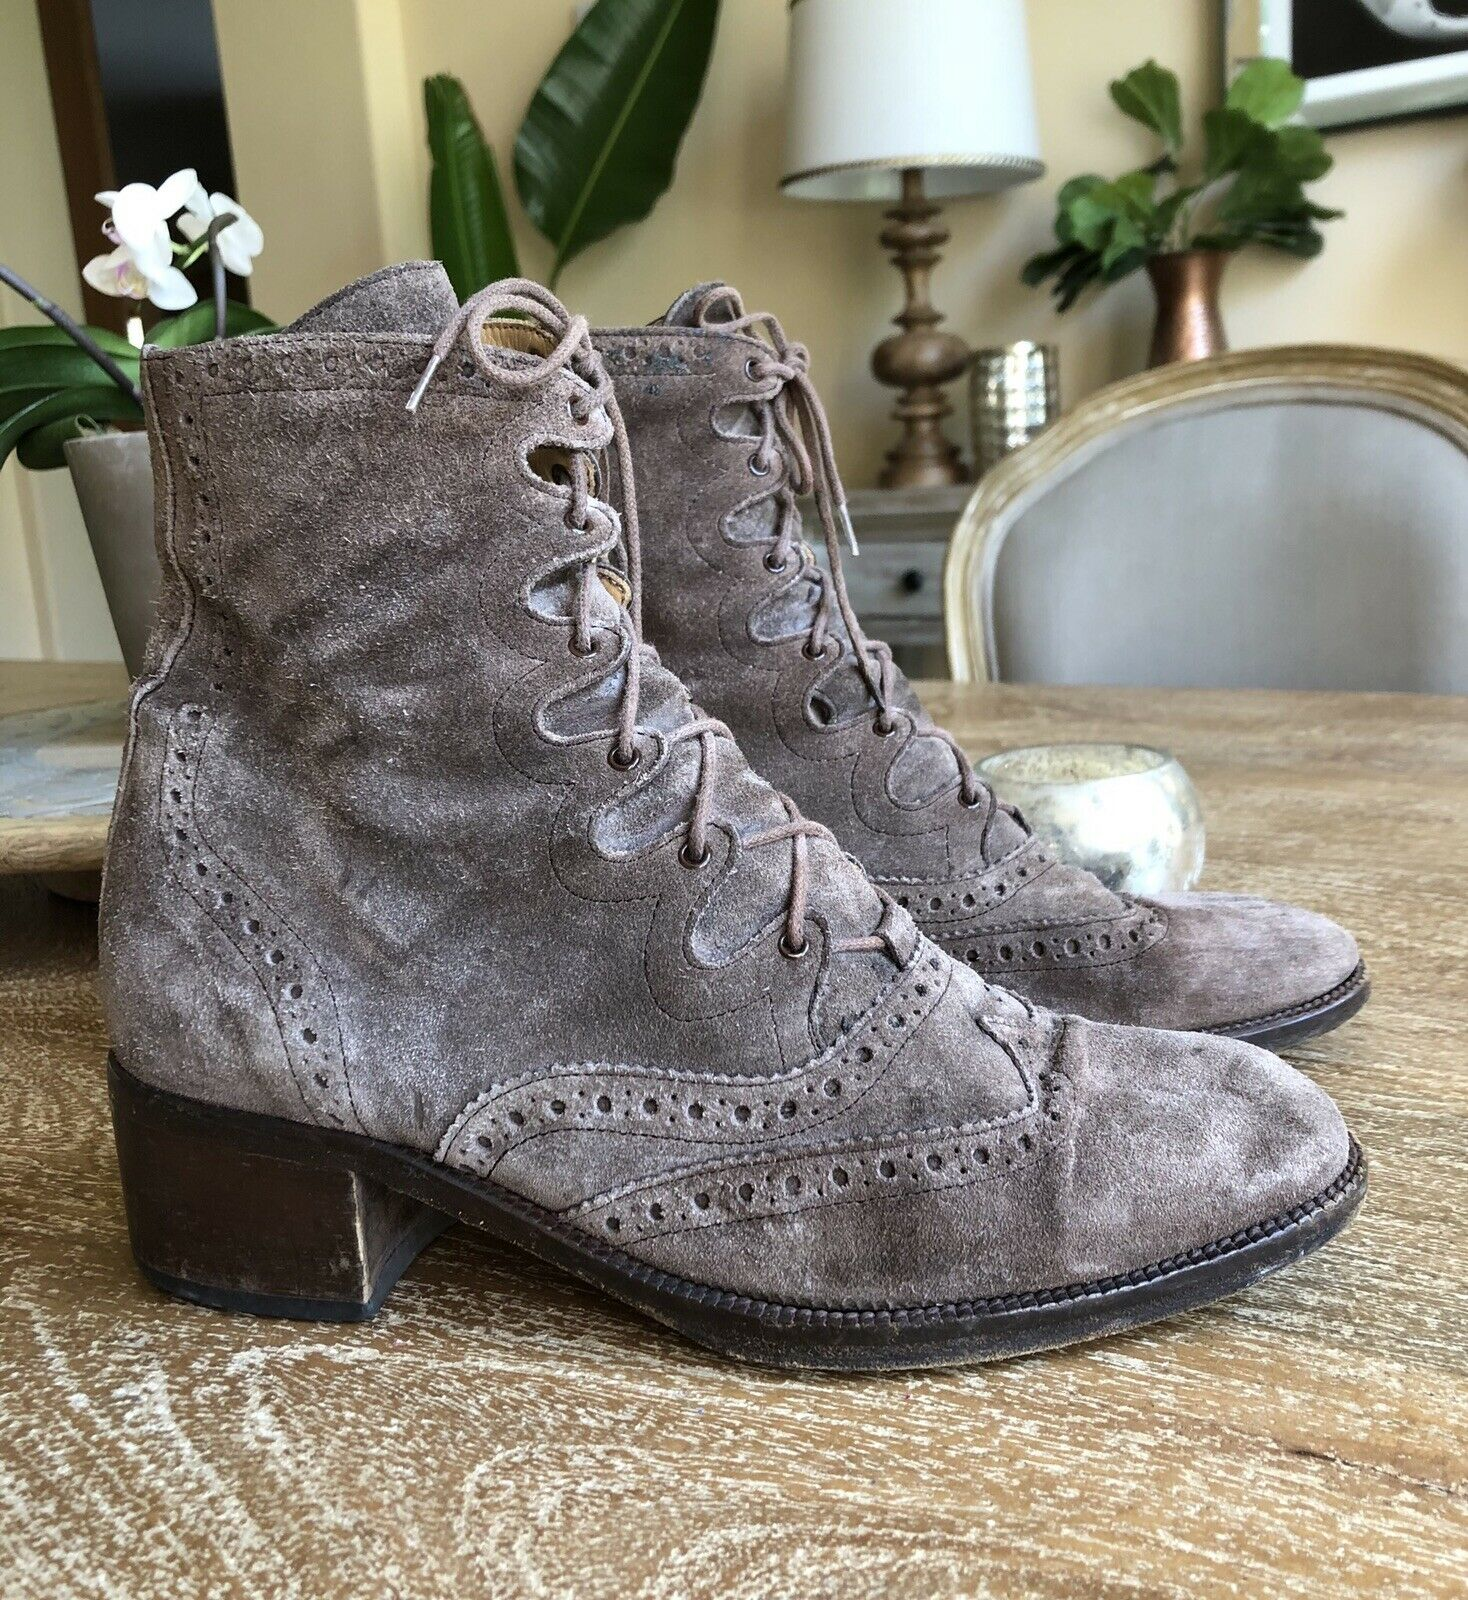 FREE LANCE Paris Oxford Steampunk Lace Up Granny Boots Ankle Booties 7.5 38